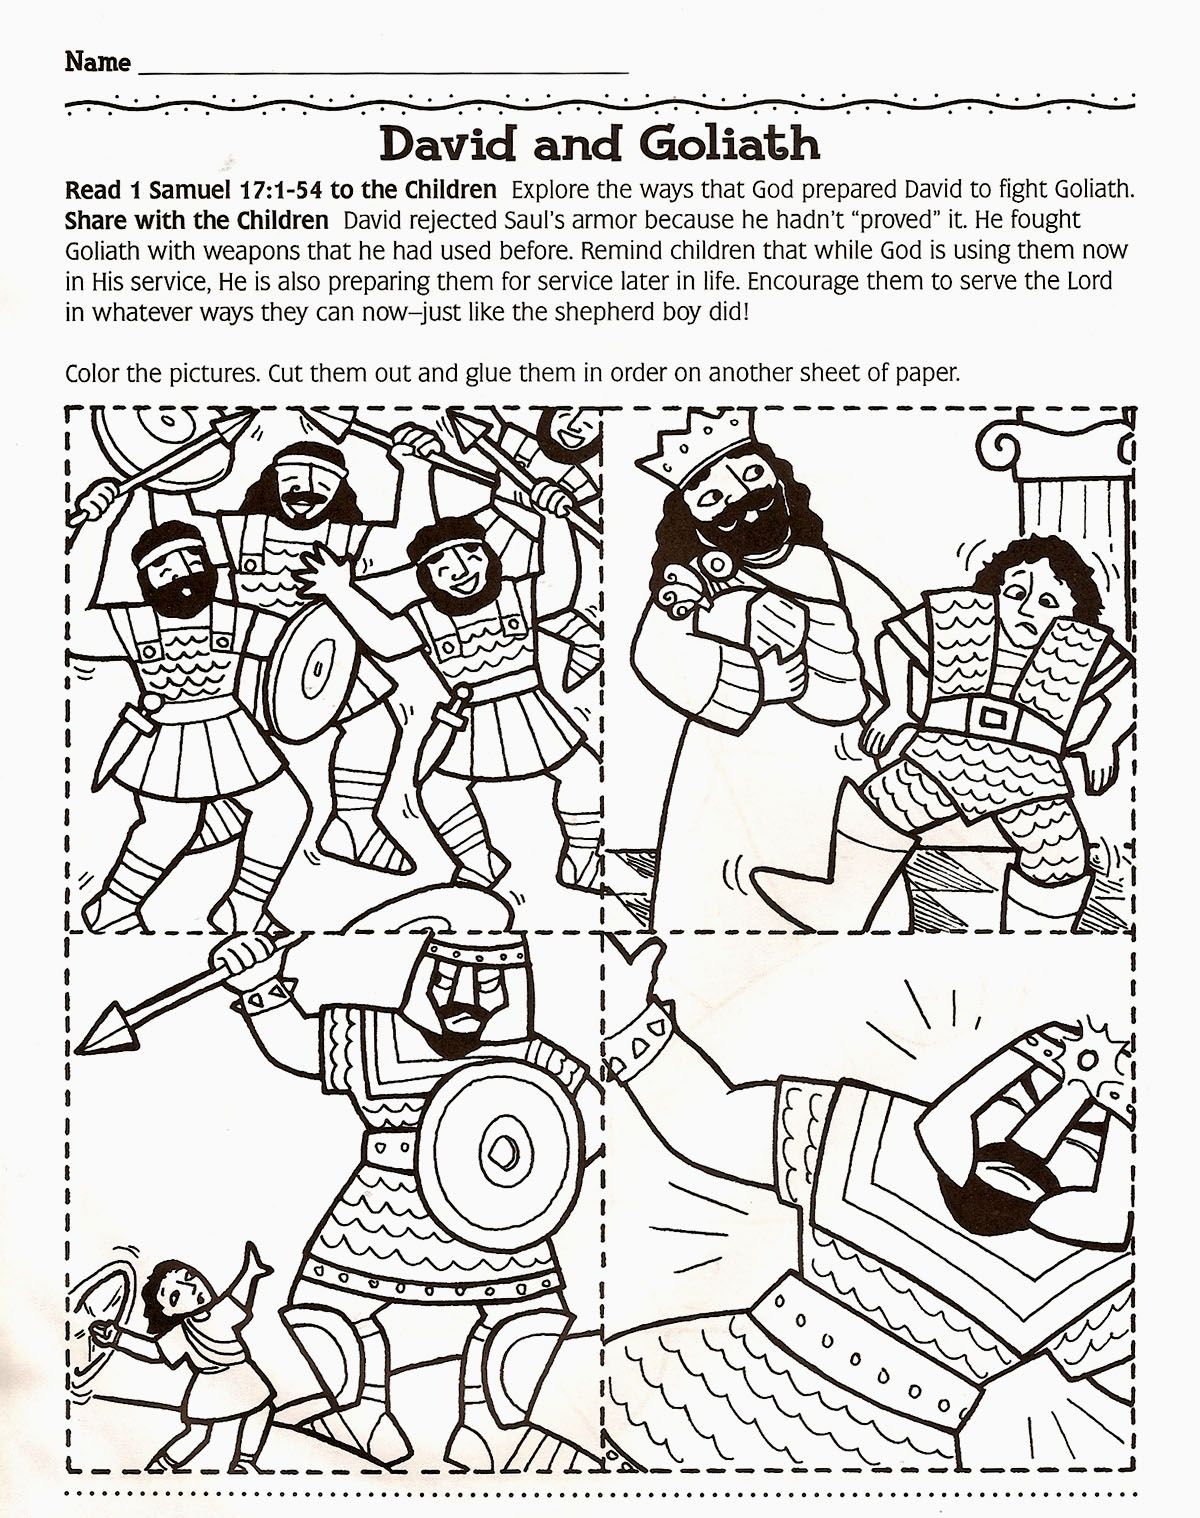 David and Goliath story cards...color, cut out, and glue in order to ...